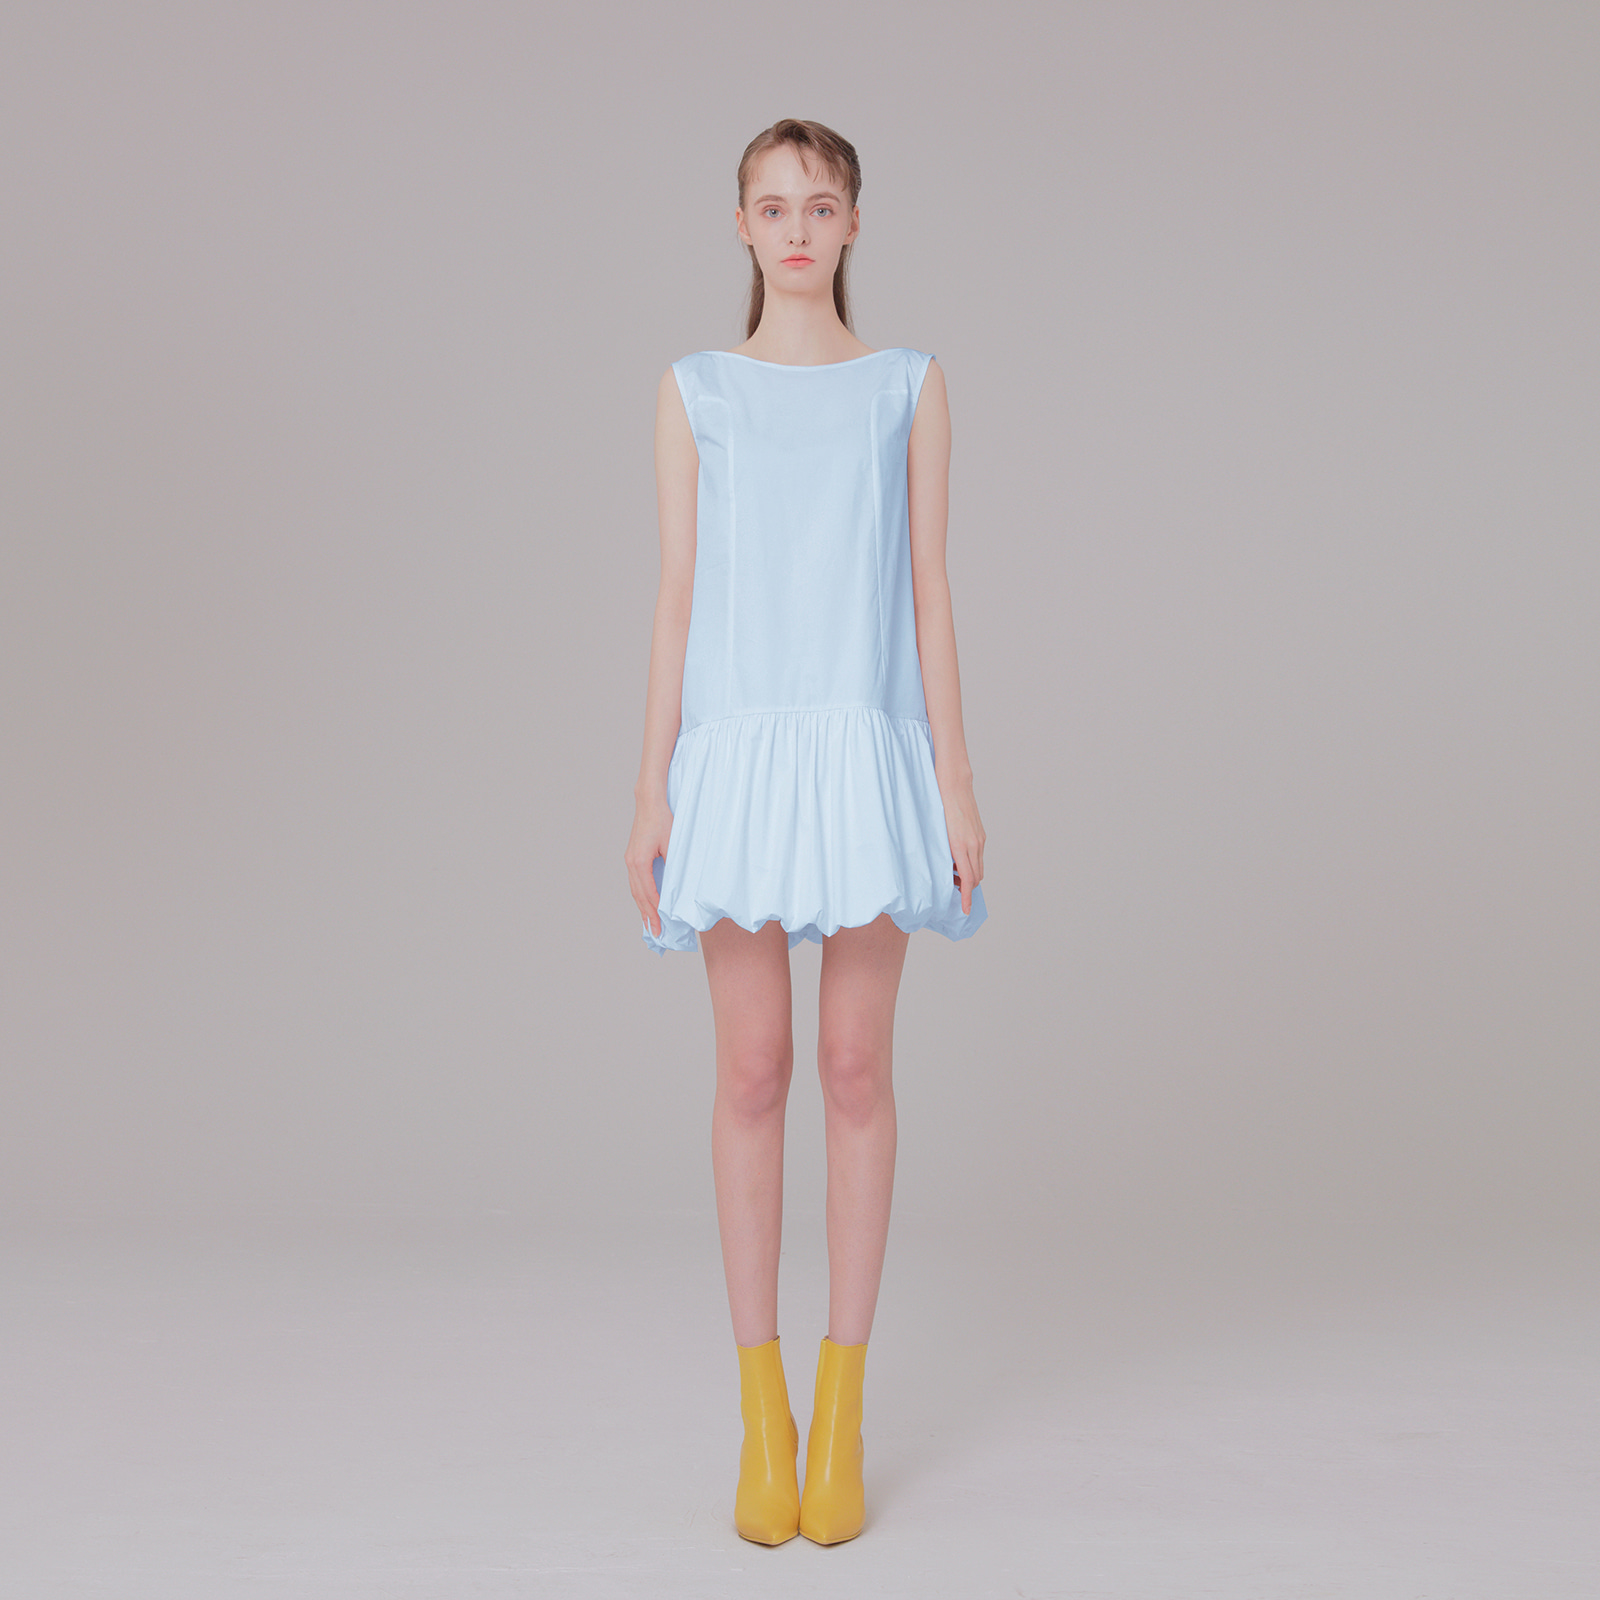 Ribbon detail dress 001 skyblue